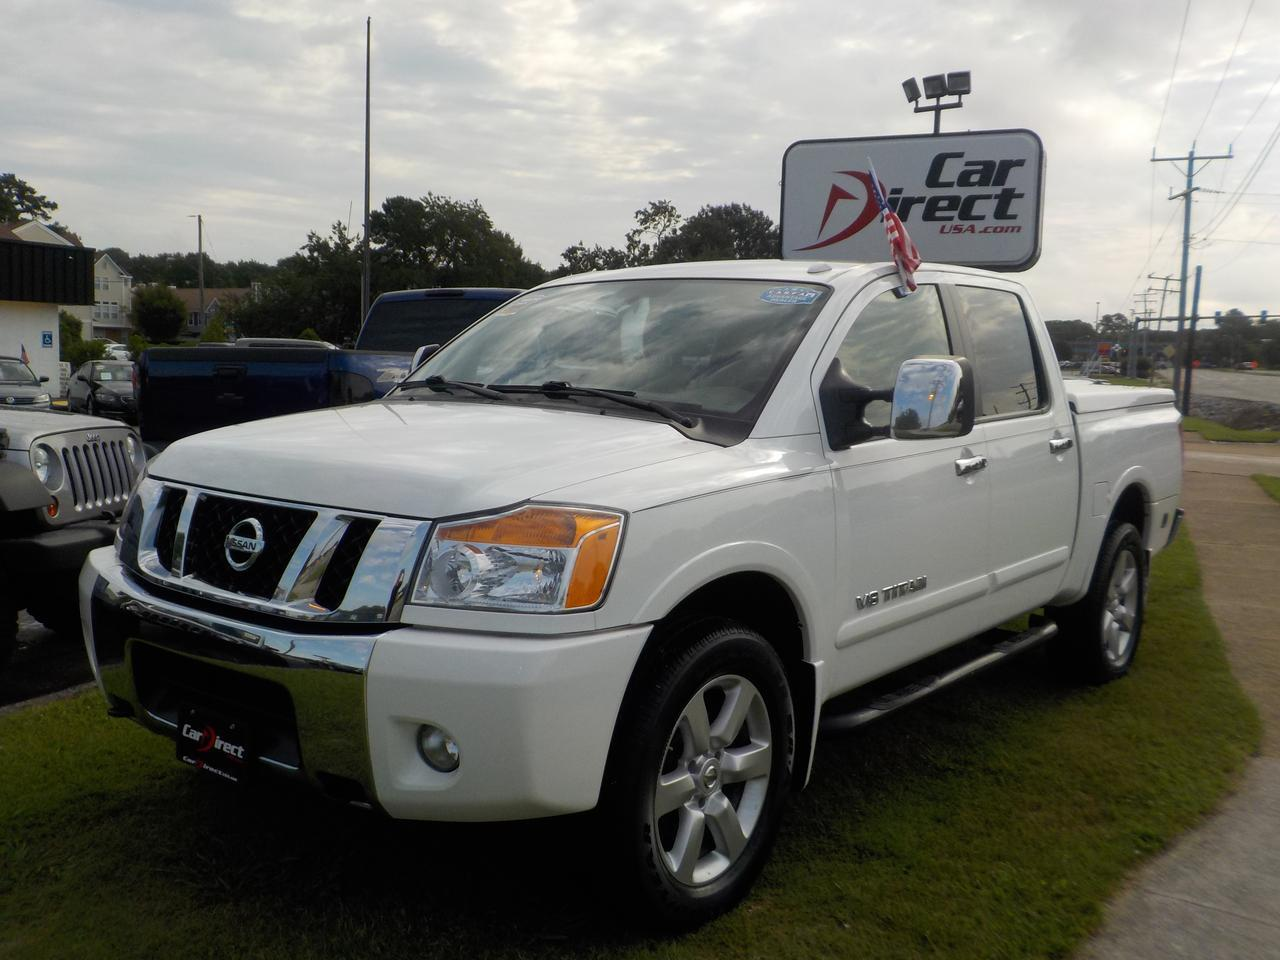 2010 NISSAN TITAN LE, 4X4, WARRANTY, HARD TONNEAU COVER, PARKING SENSORS, TOW HITCH, RUNNING BOARDS!